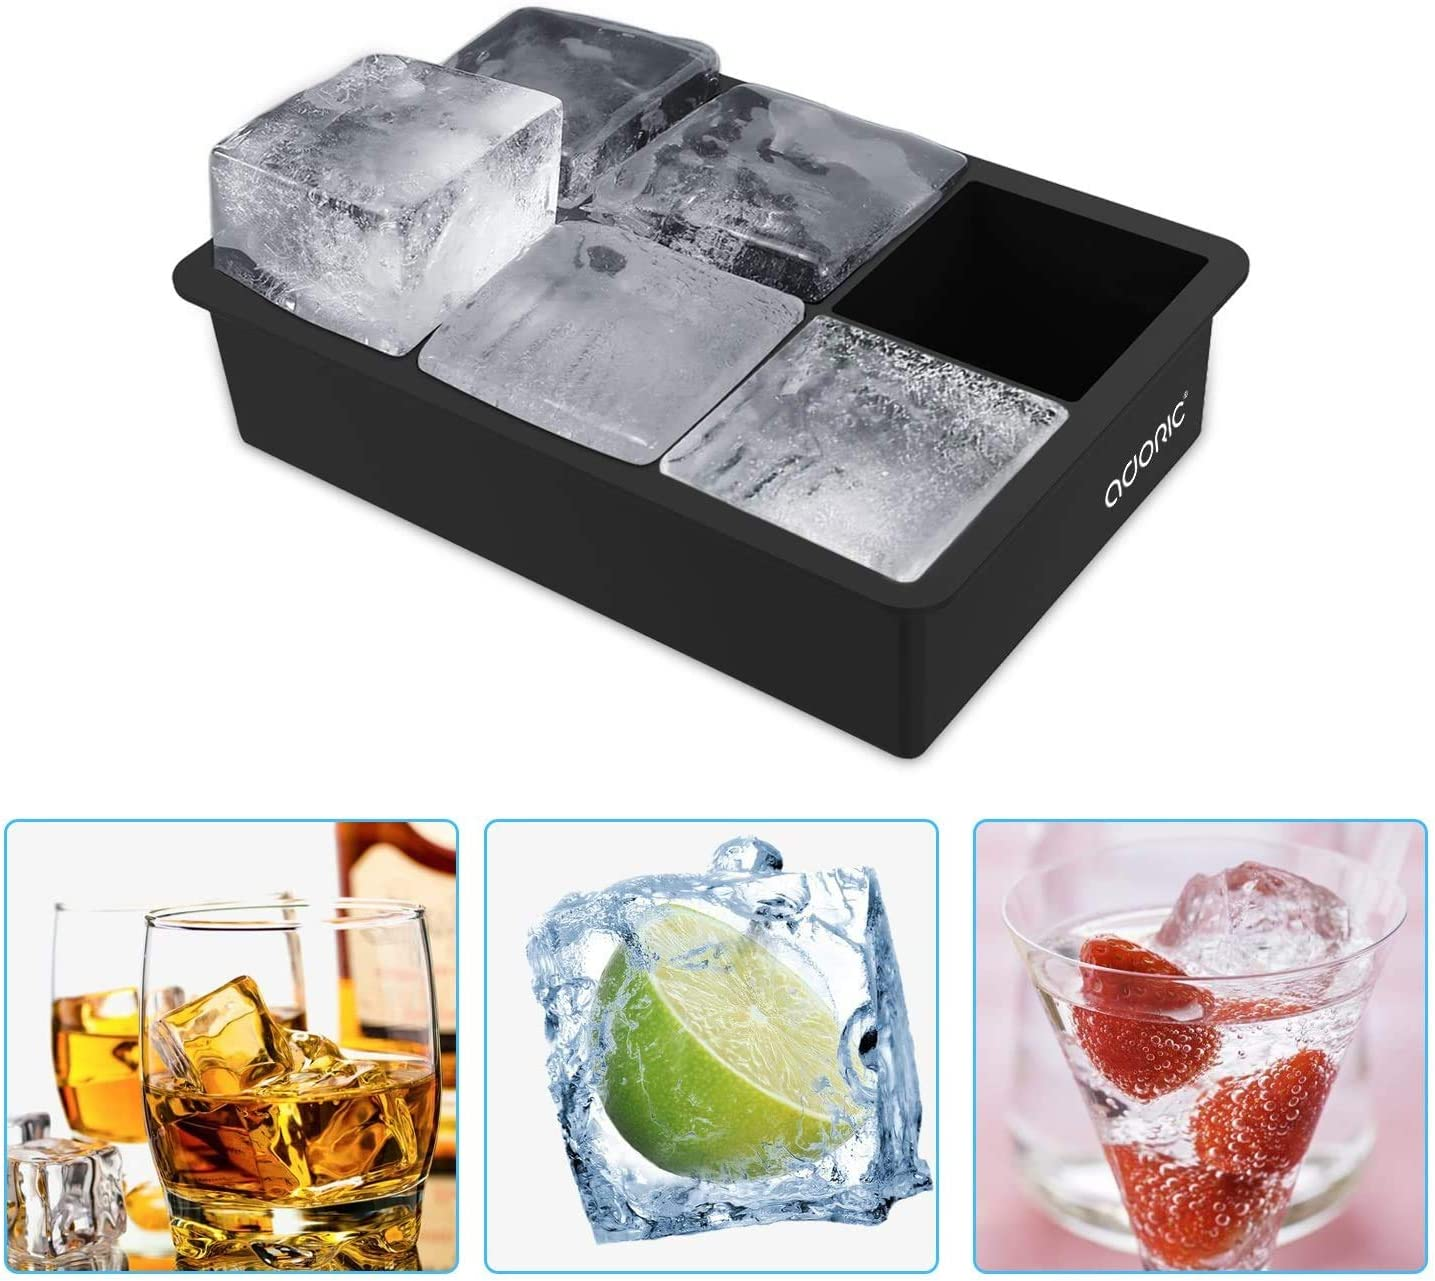 Adoric Ice Cube Trays Silicone Set of 2, Sphere Ice Ball Maker with Lid and Large Square Ice Cube Molds for Whiskey, Reusable and BPA Free (Ice Cube Trays Silicone Set of 2): Kitchen & Dining